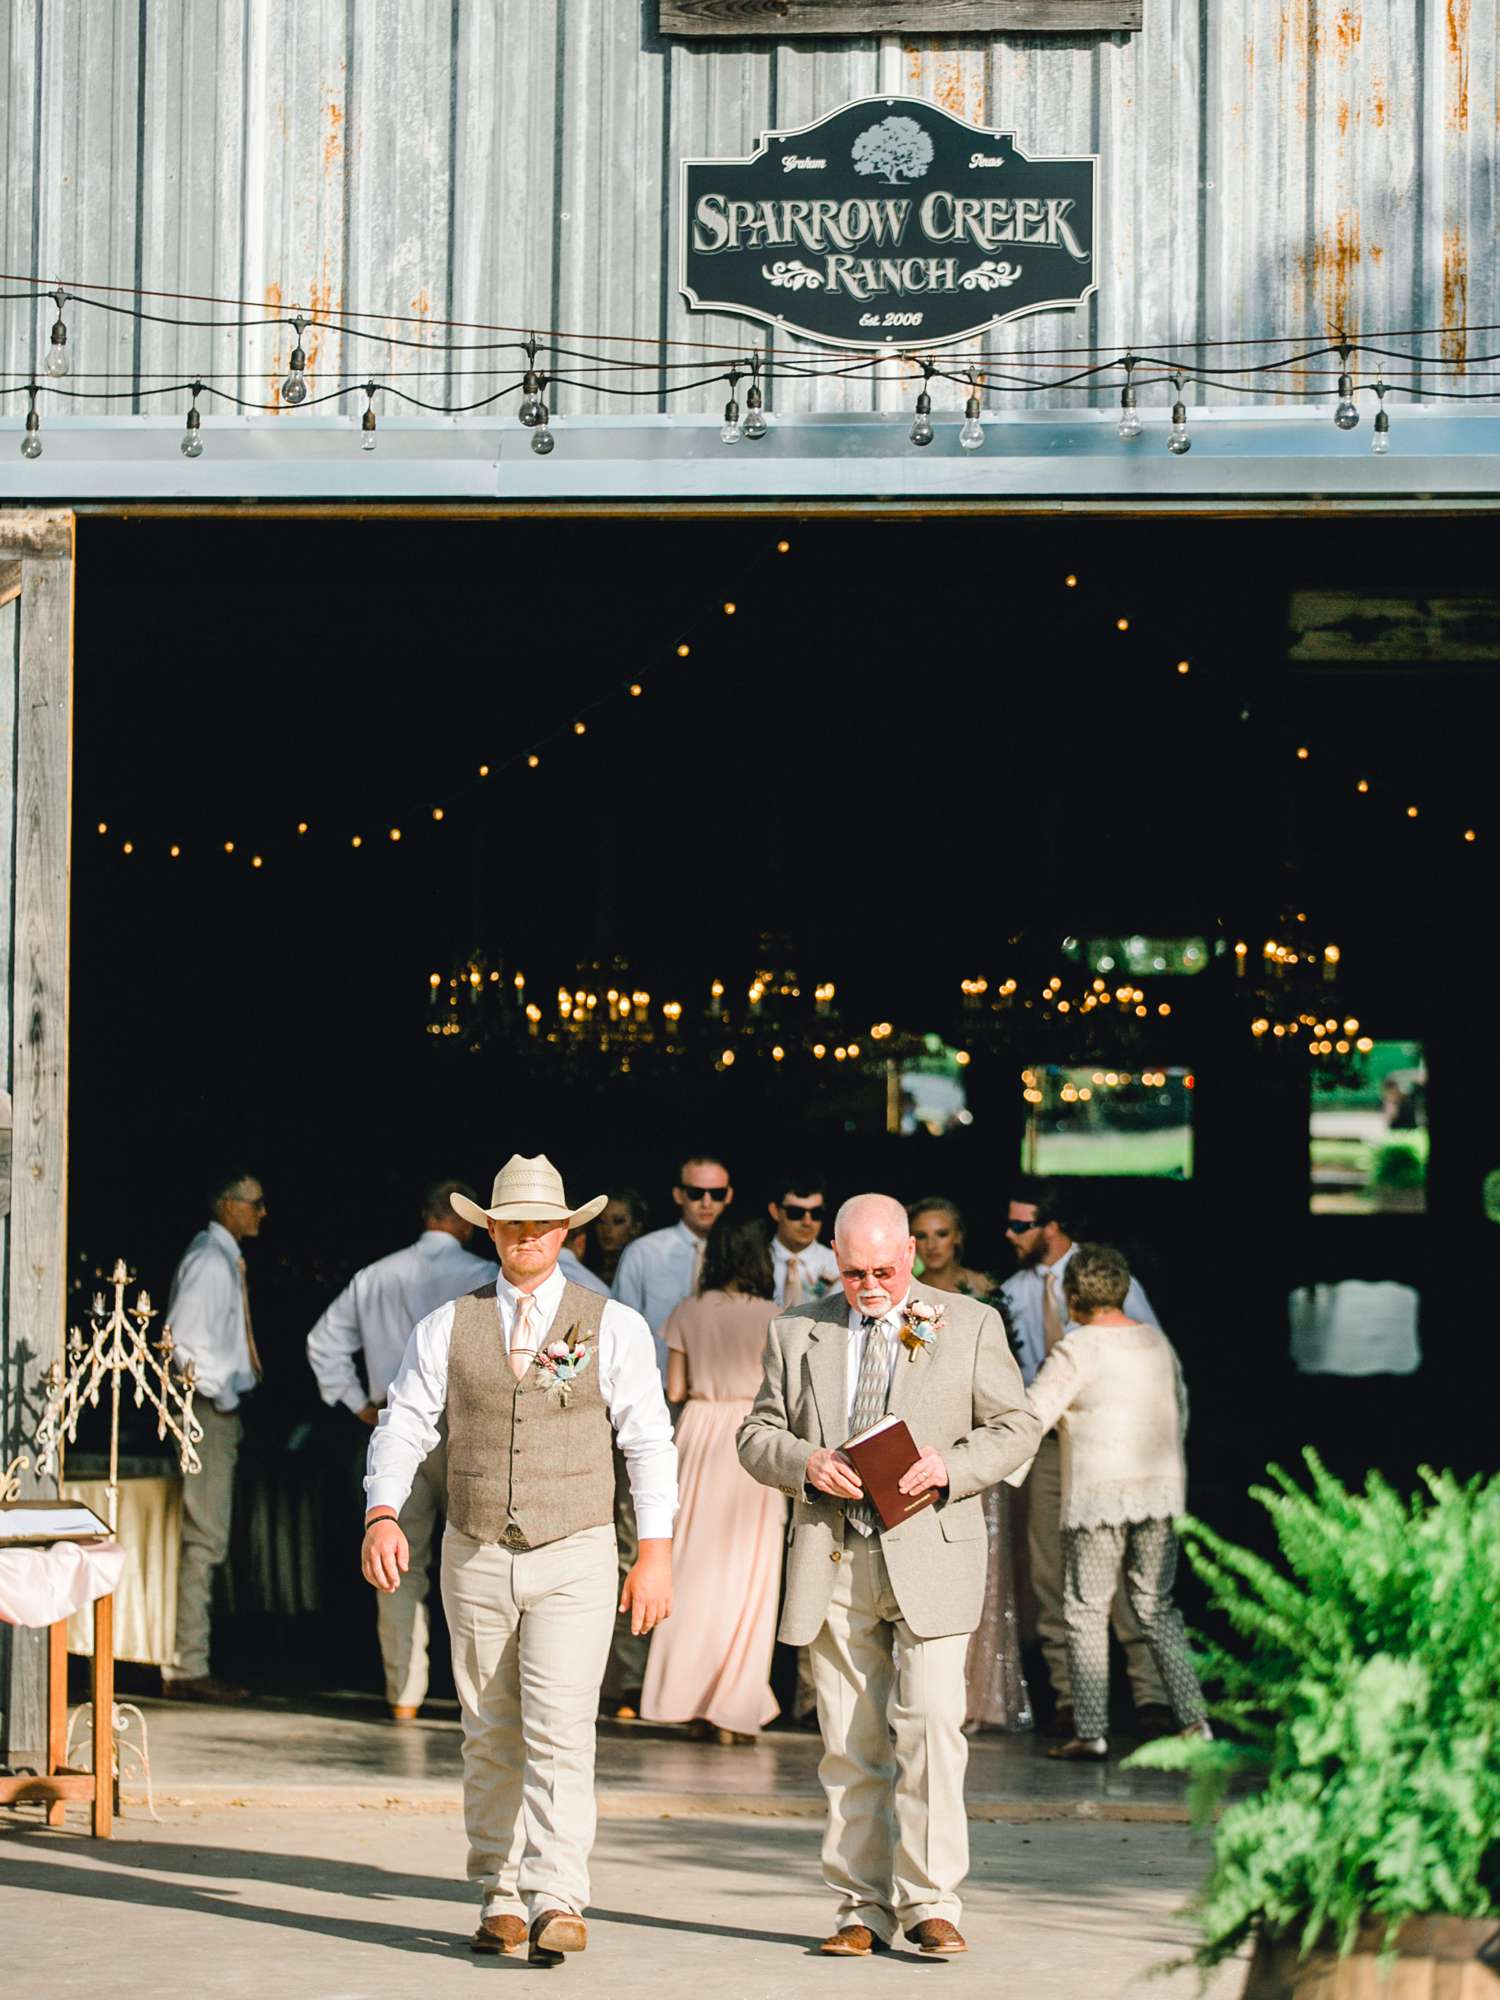 SARAH+TREVOR+BADGETT+SPARROW+CREEK+GRAHAM+TEXAS+ALLEEJ+WEDDINGS_0054.jpg